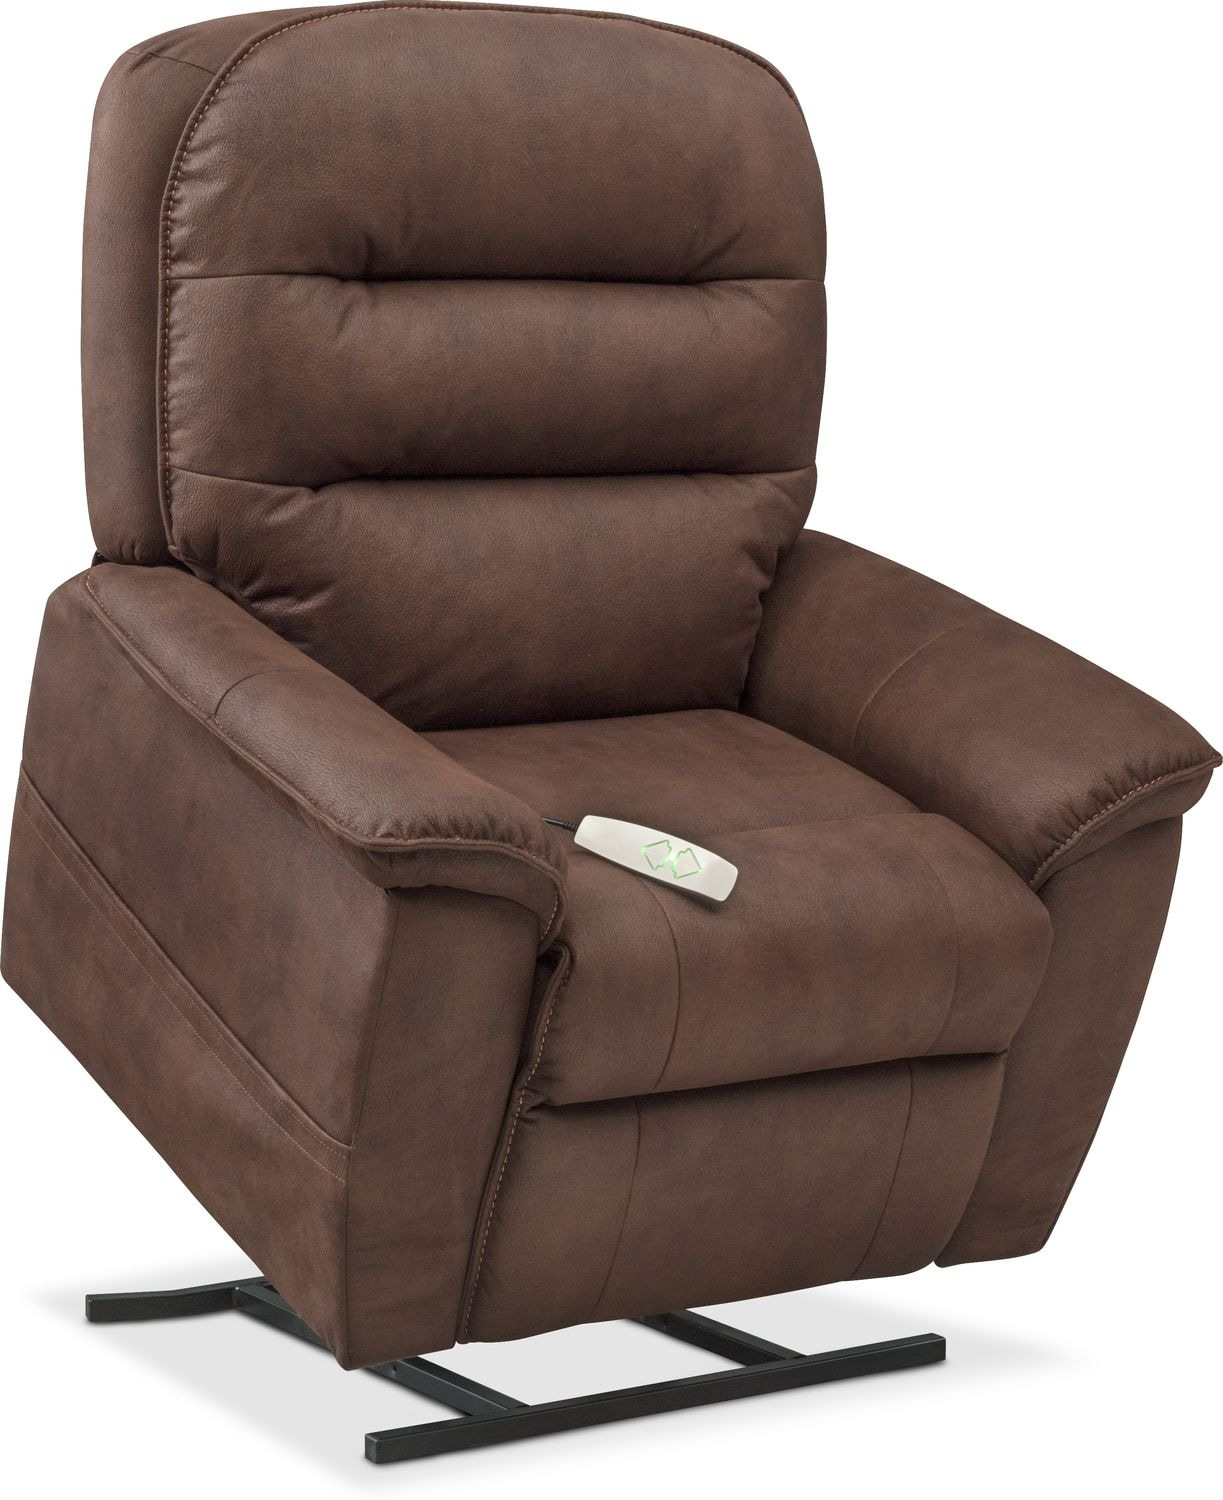 Living Room Furniture - Regis Power Lift Recliner